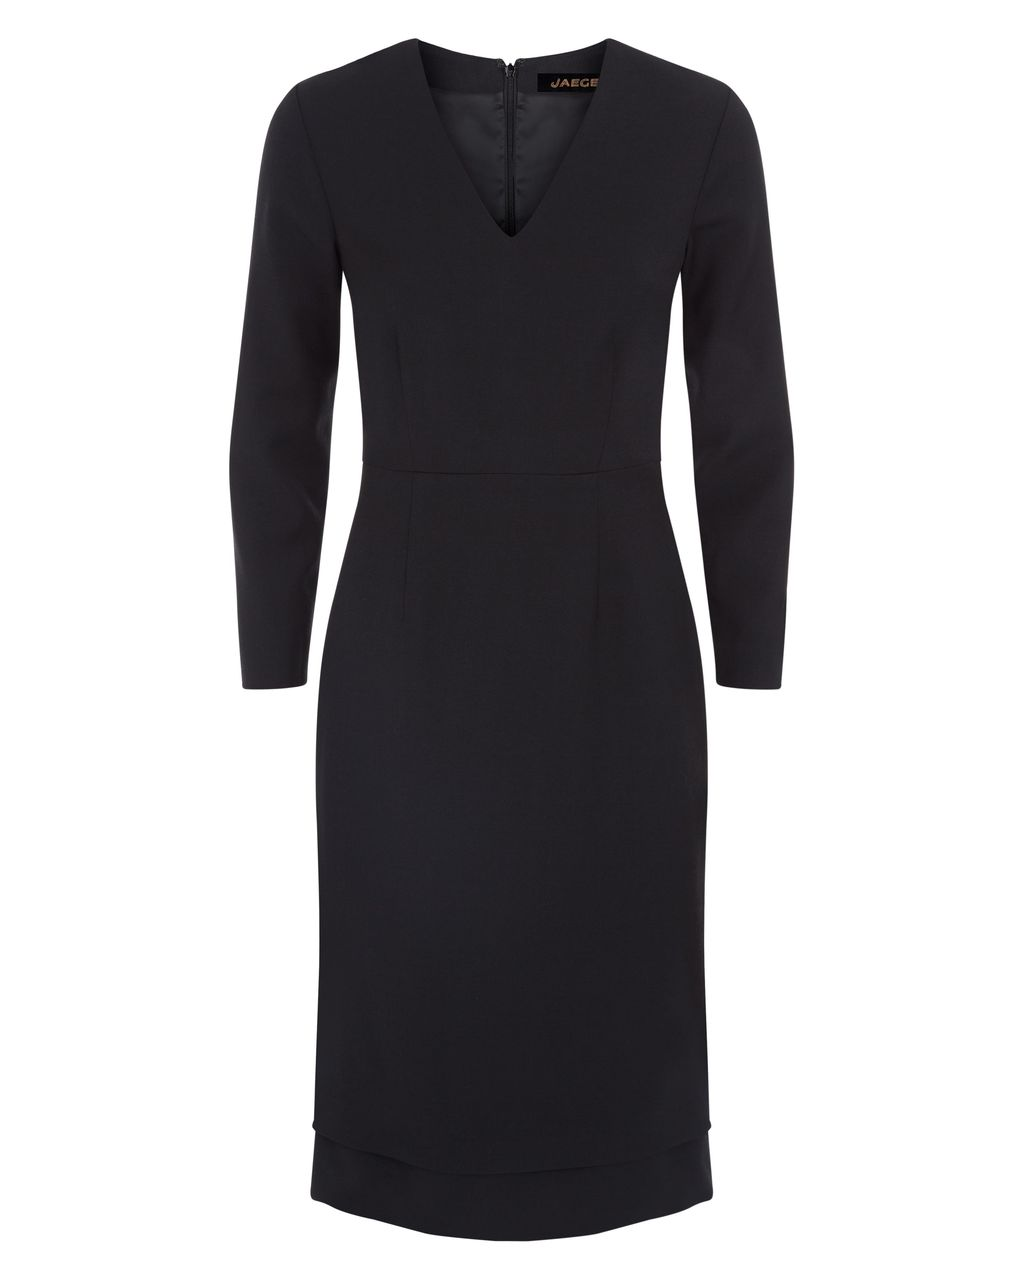 Floating Hem Dress, Black - style: shift; neckline: v-neck; fit: tailored/fitted; pattern: plain; predominant colour: black; occasions: work, creative work; length: just above the knee; fibres: wool - mix; sleeve length: 3/4 length; sleeve style: standard; texture group: crepes; pattern type: fabric; season: s/s 2016; wardrobe: investment